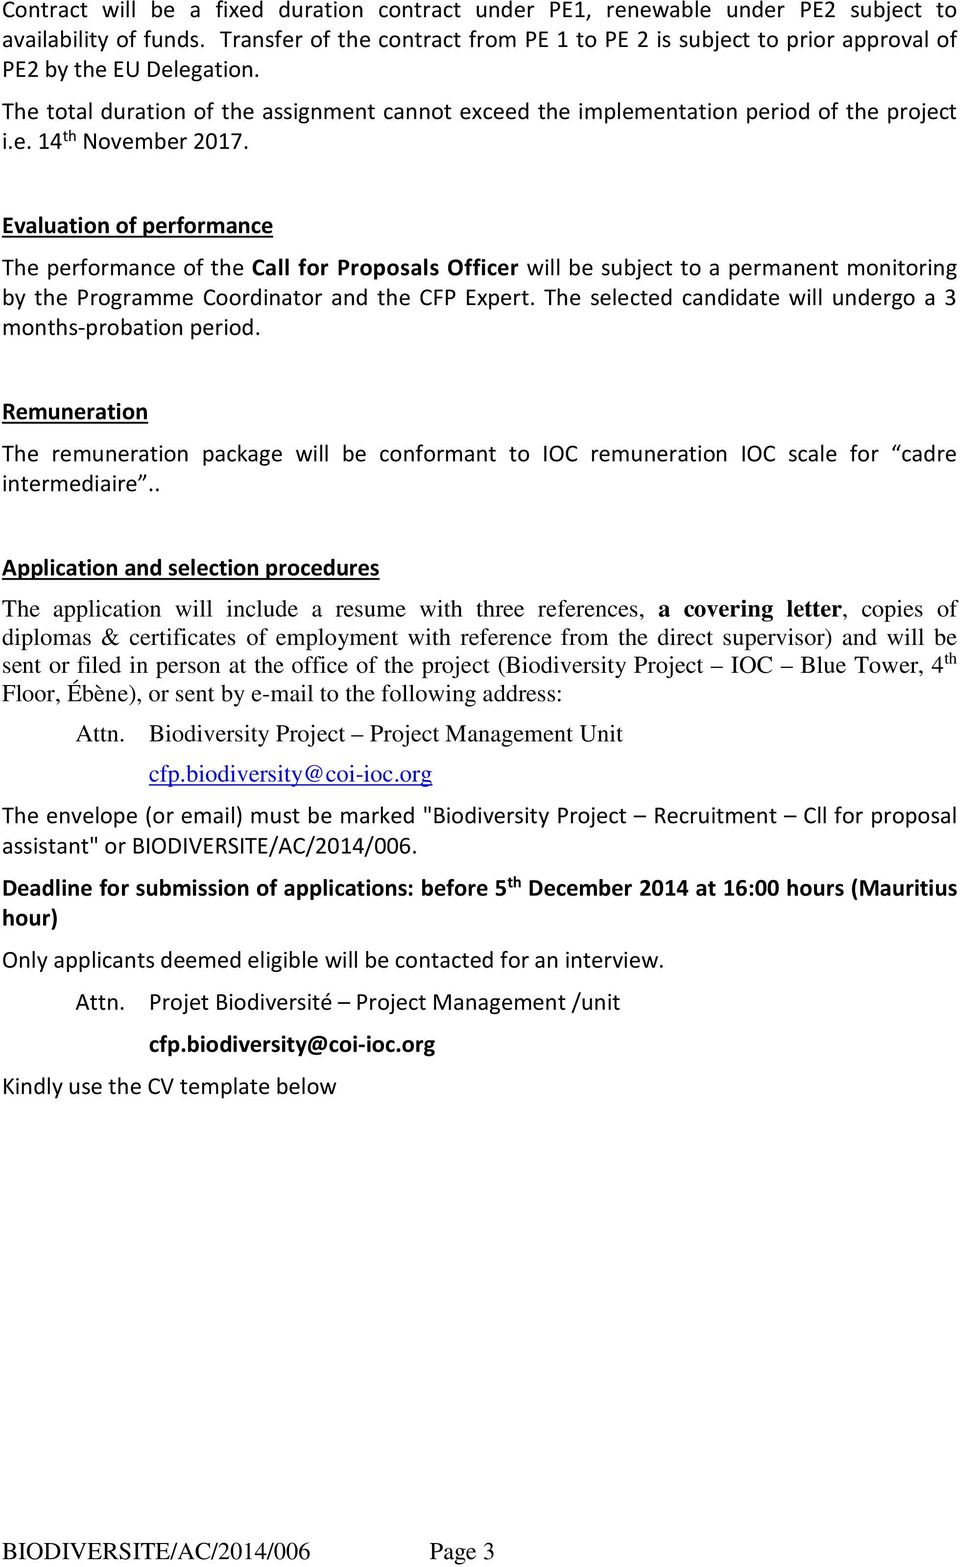 Evaluation of performance The performance of the Call for Proposals Officer will be subject to a permanent monitoring by the Programme Coordinator and the CFP Expert.